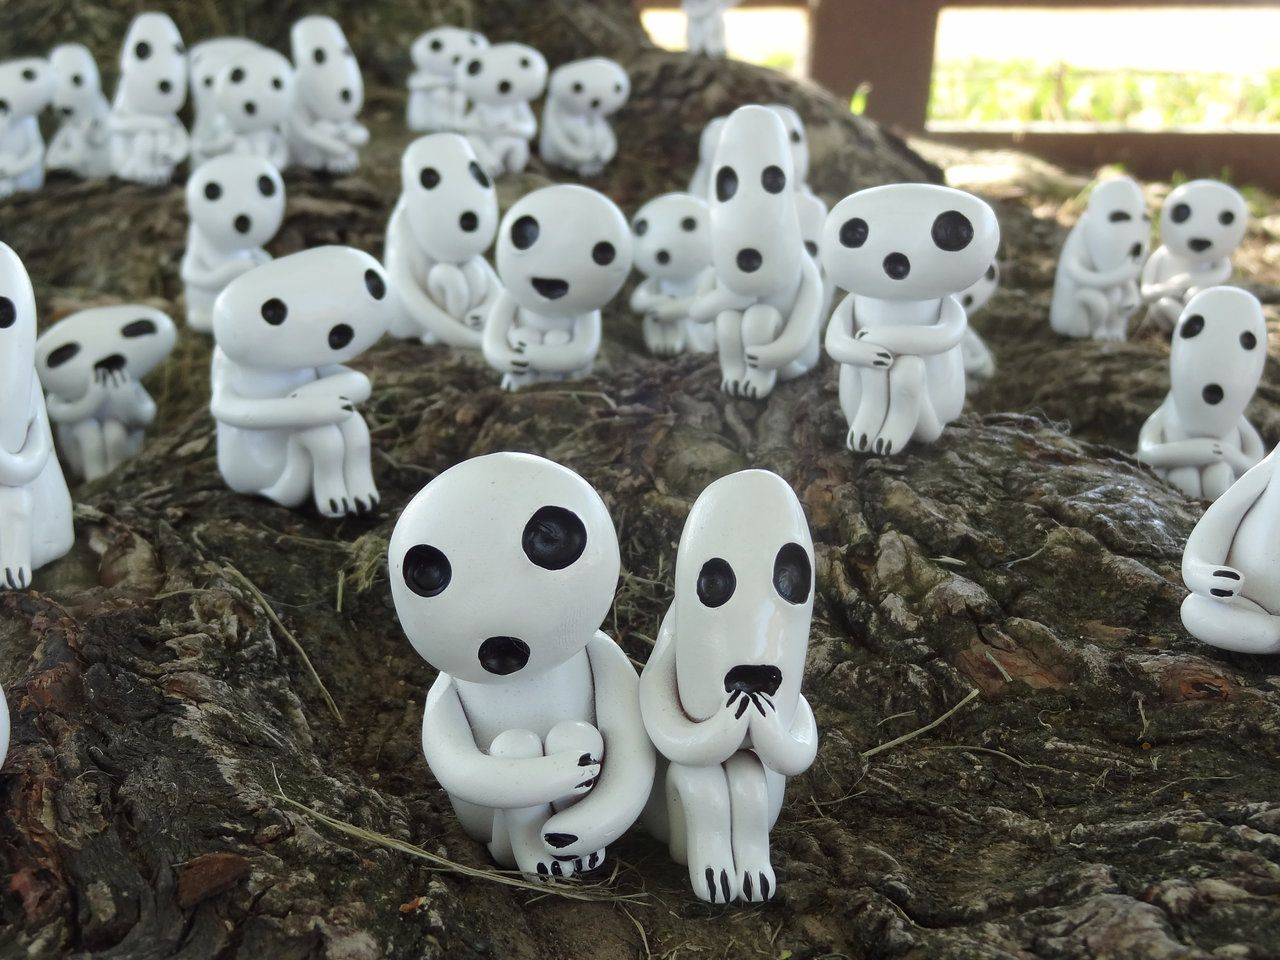 Kodama Forest by meanlilkitty.deviantart.com on @deviantART -- Definitely want some Kodama. Need to decide scale, and if I want to add LED's so they glow at night.